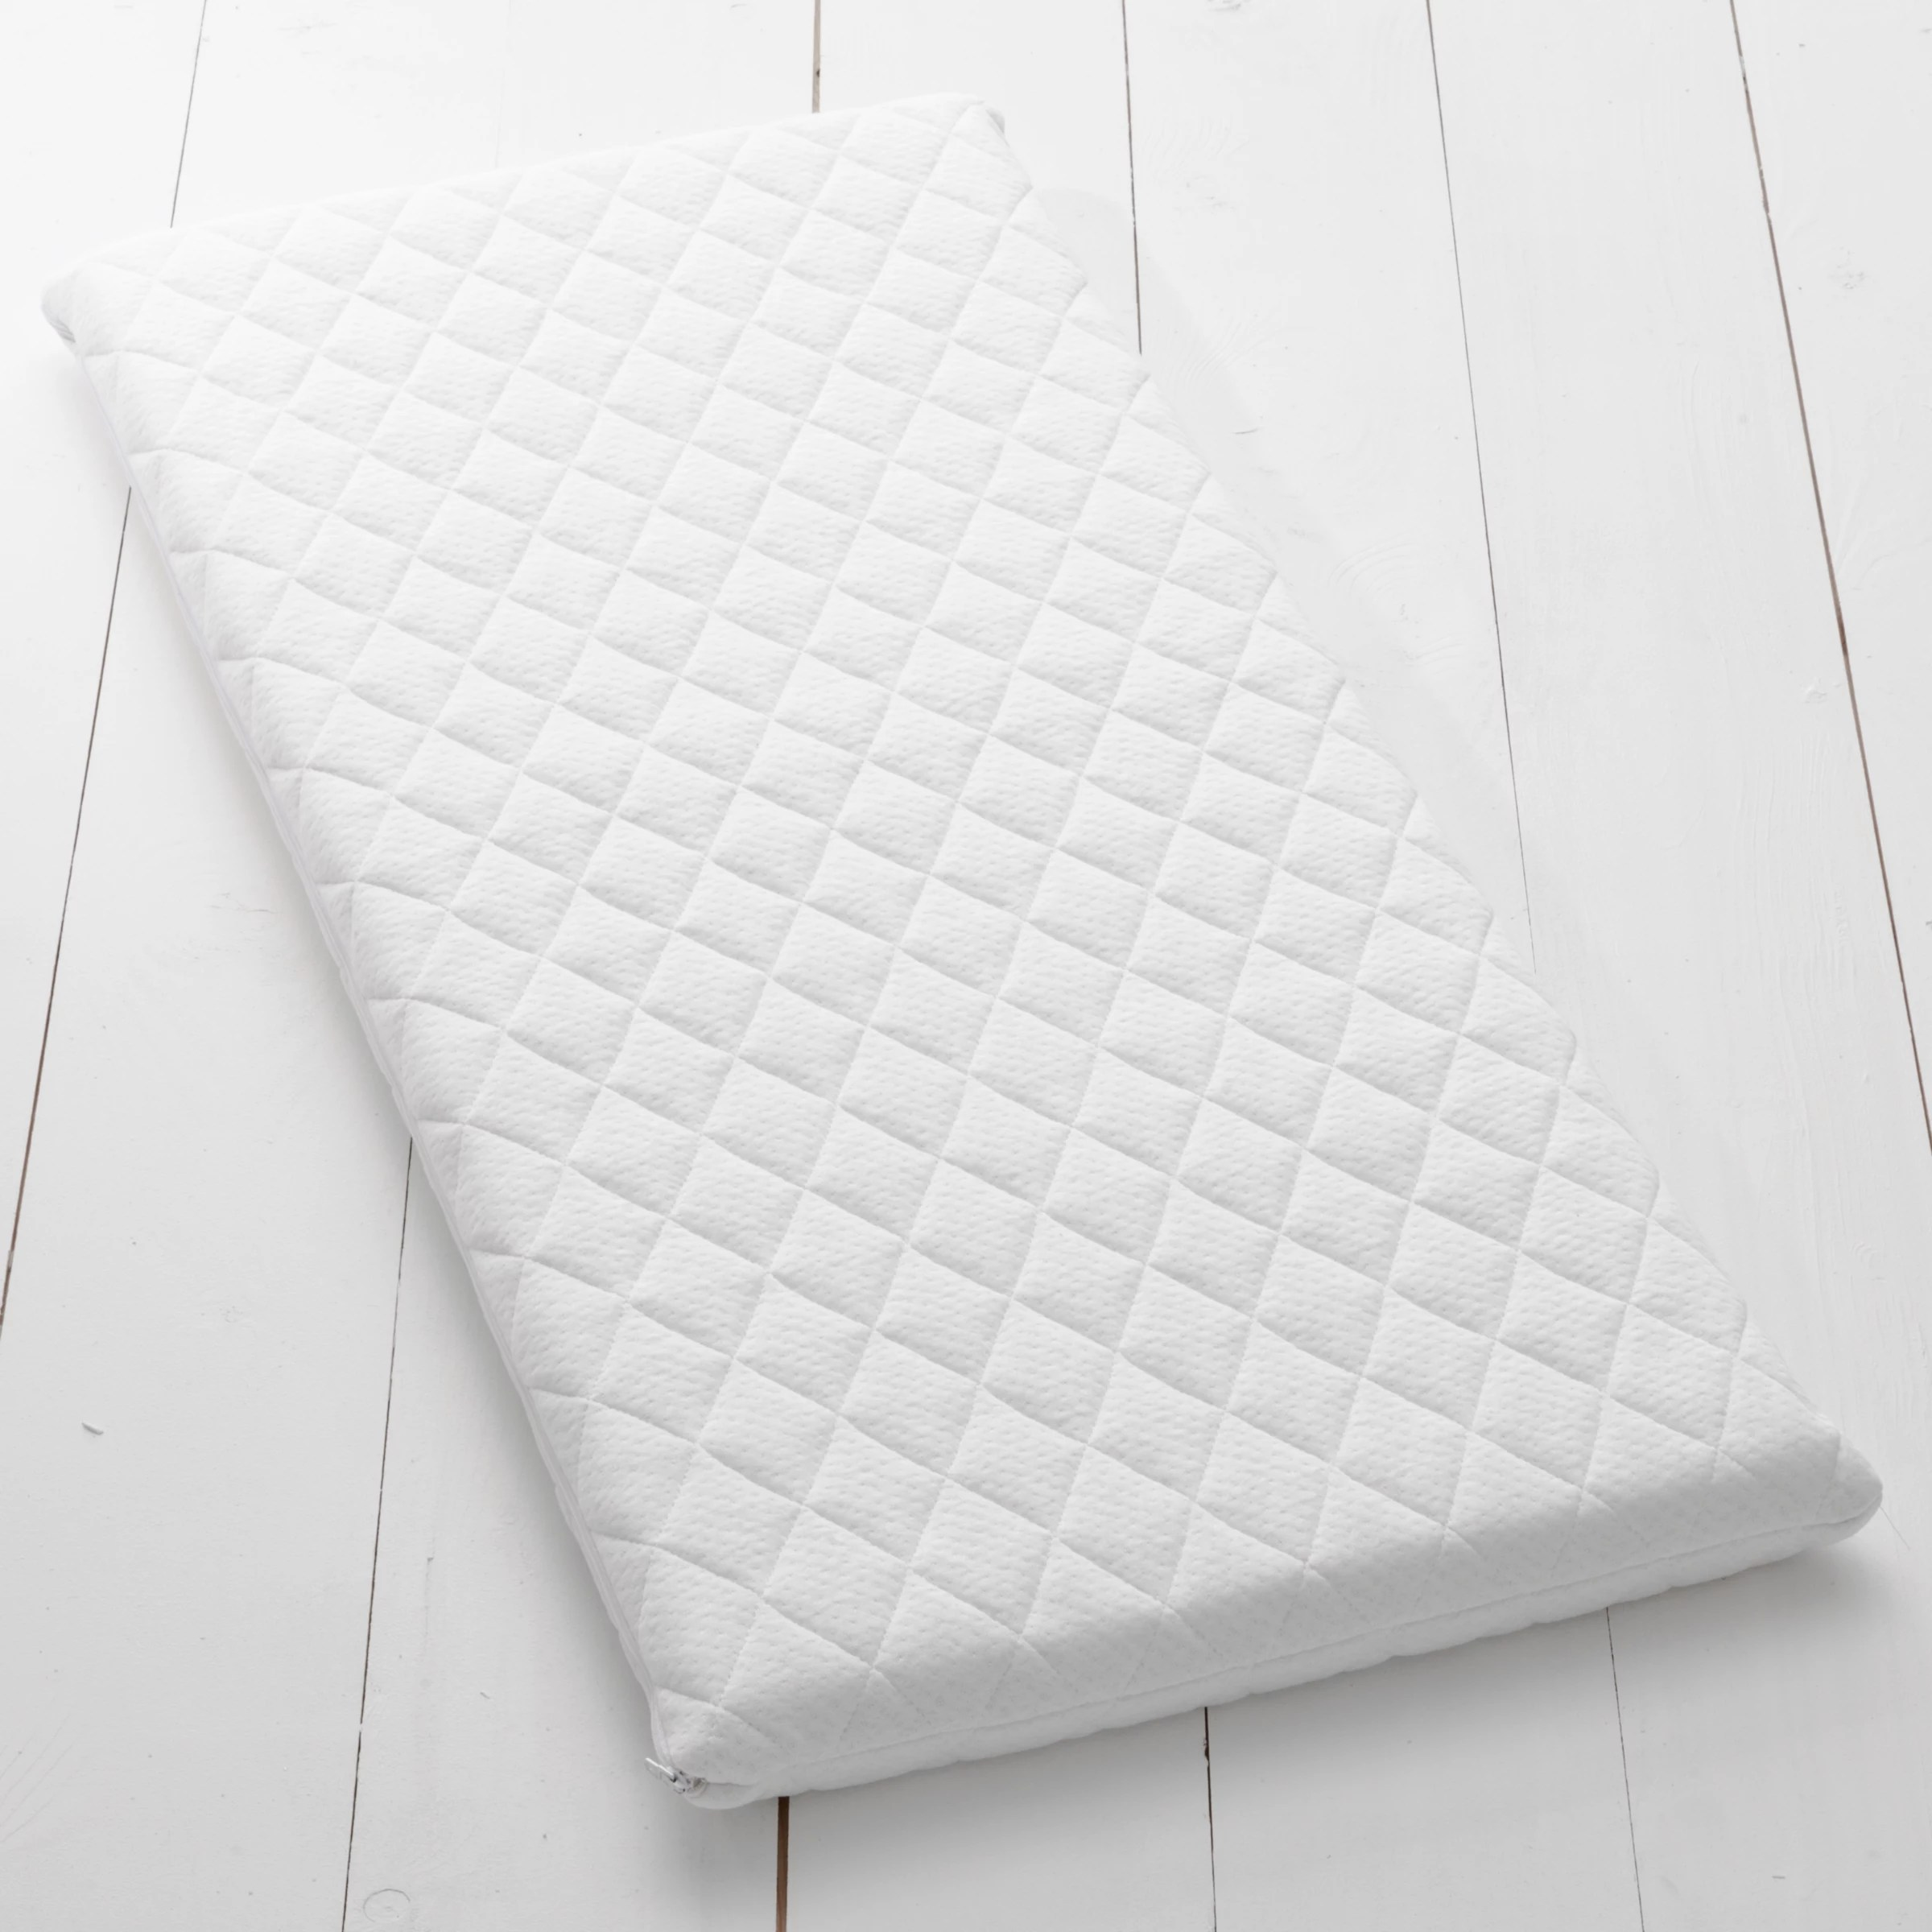 38 X 89cm Crib Mattress John Lewis Premium Foam Crib Mattress 89 X 38cm At John Lewis